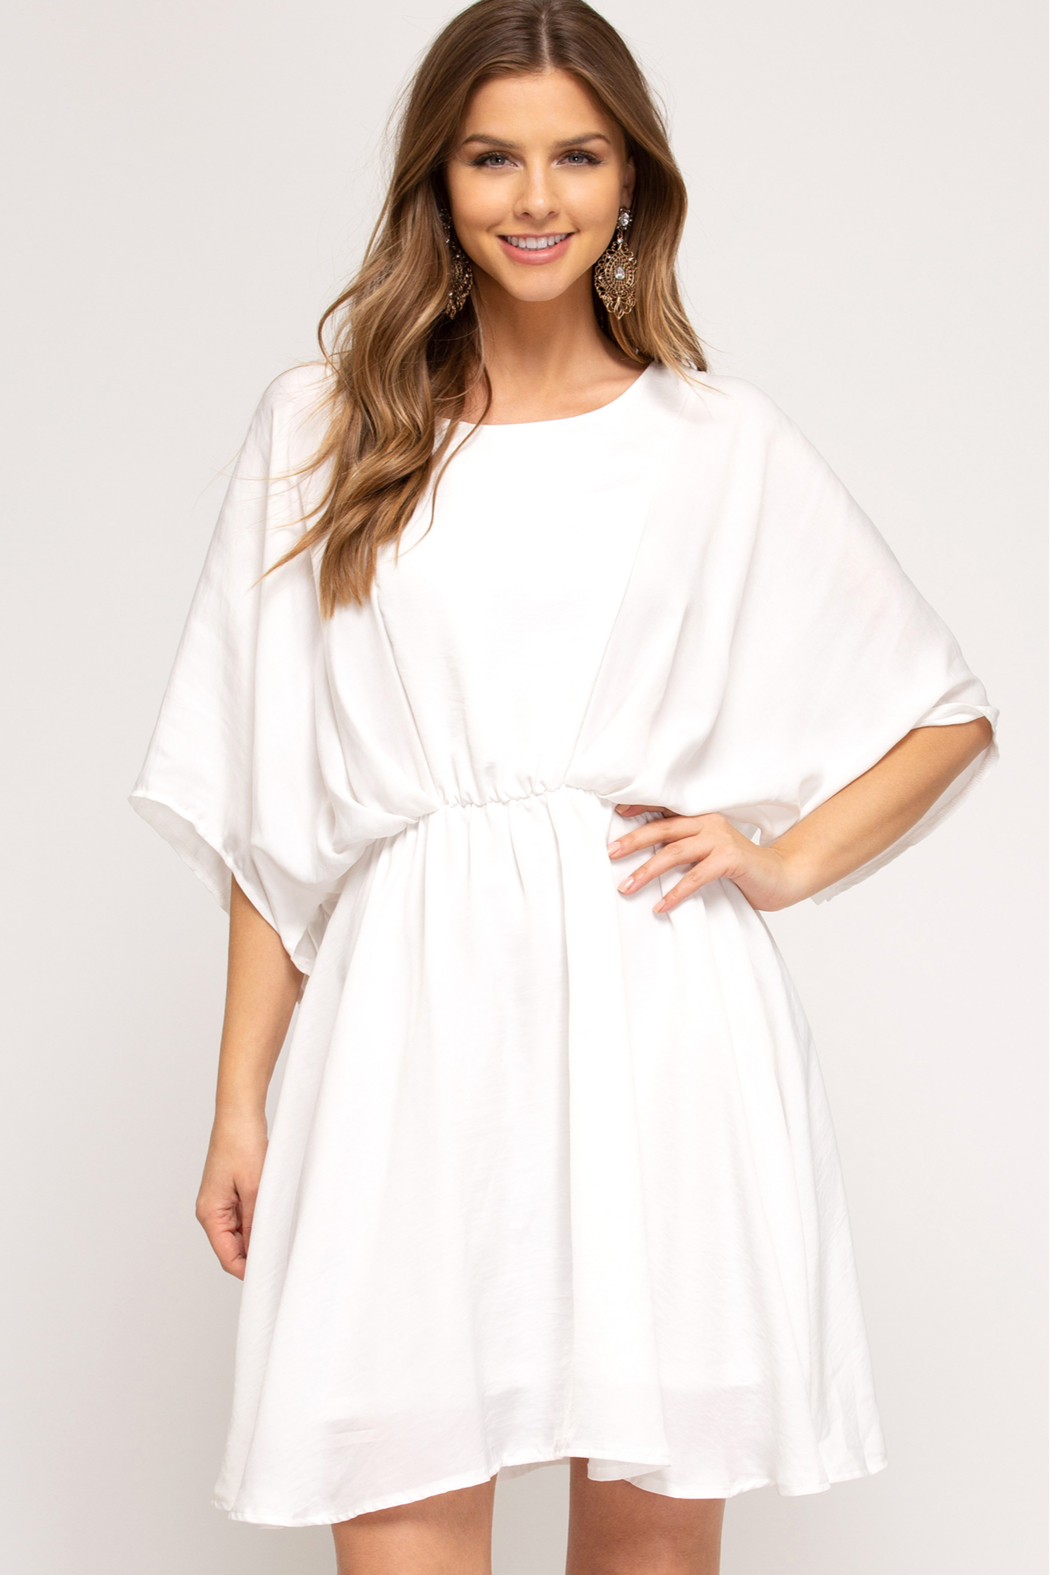 She and Sky KIMONO SLV WOVEN SATIN DRESS - Front Cropped Image